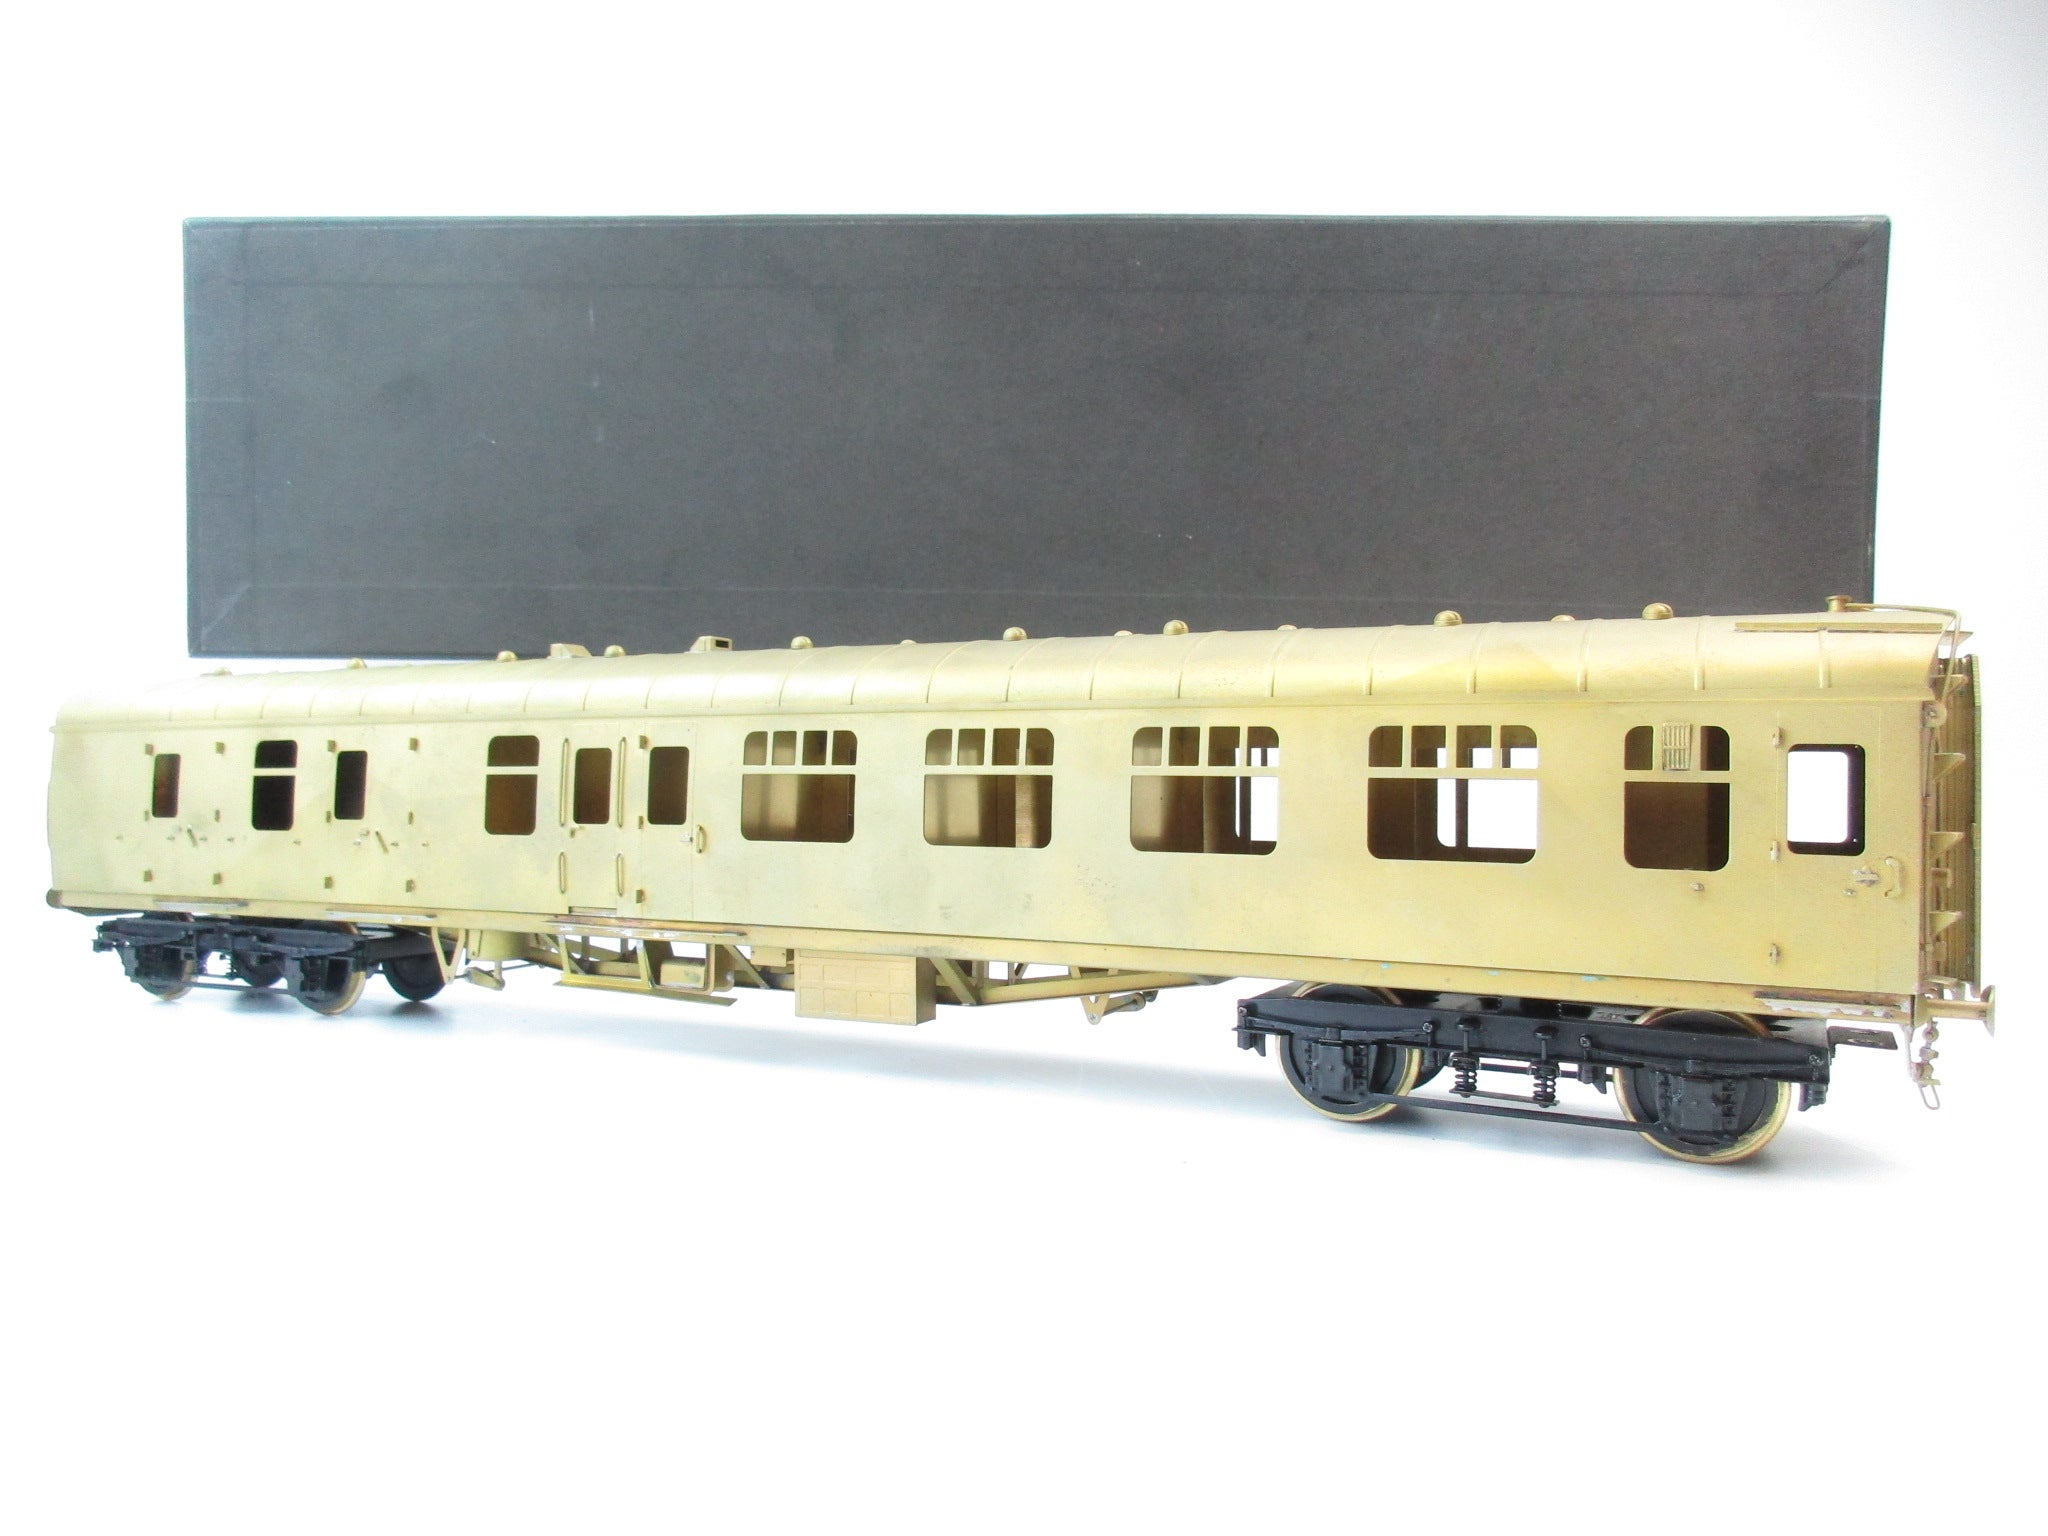 Sancheng/Tower Brass 7mm Finescale O Gauge BR MK1 BSK Coach (Plain Brass)